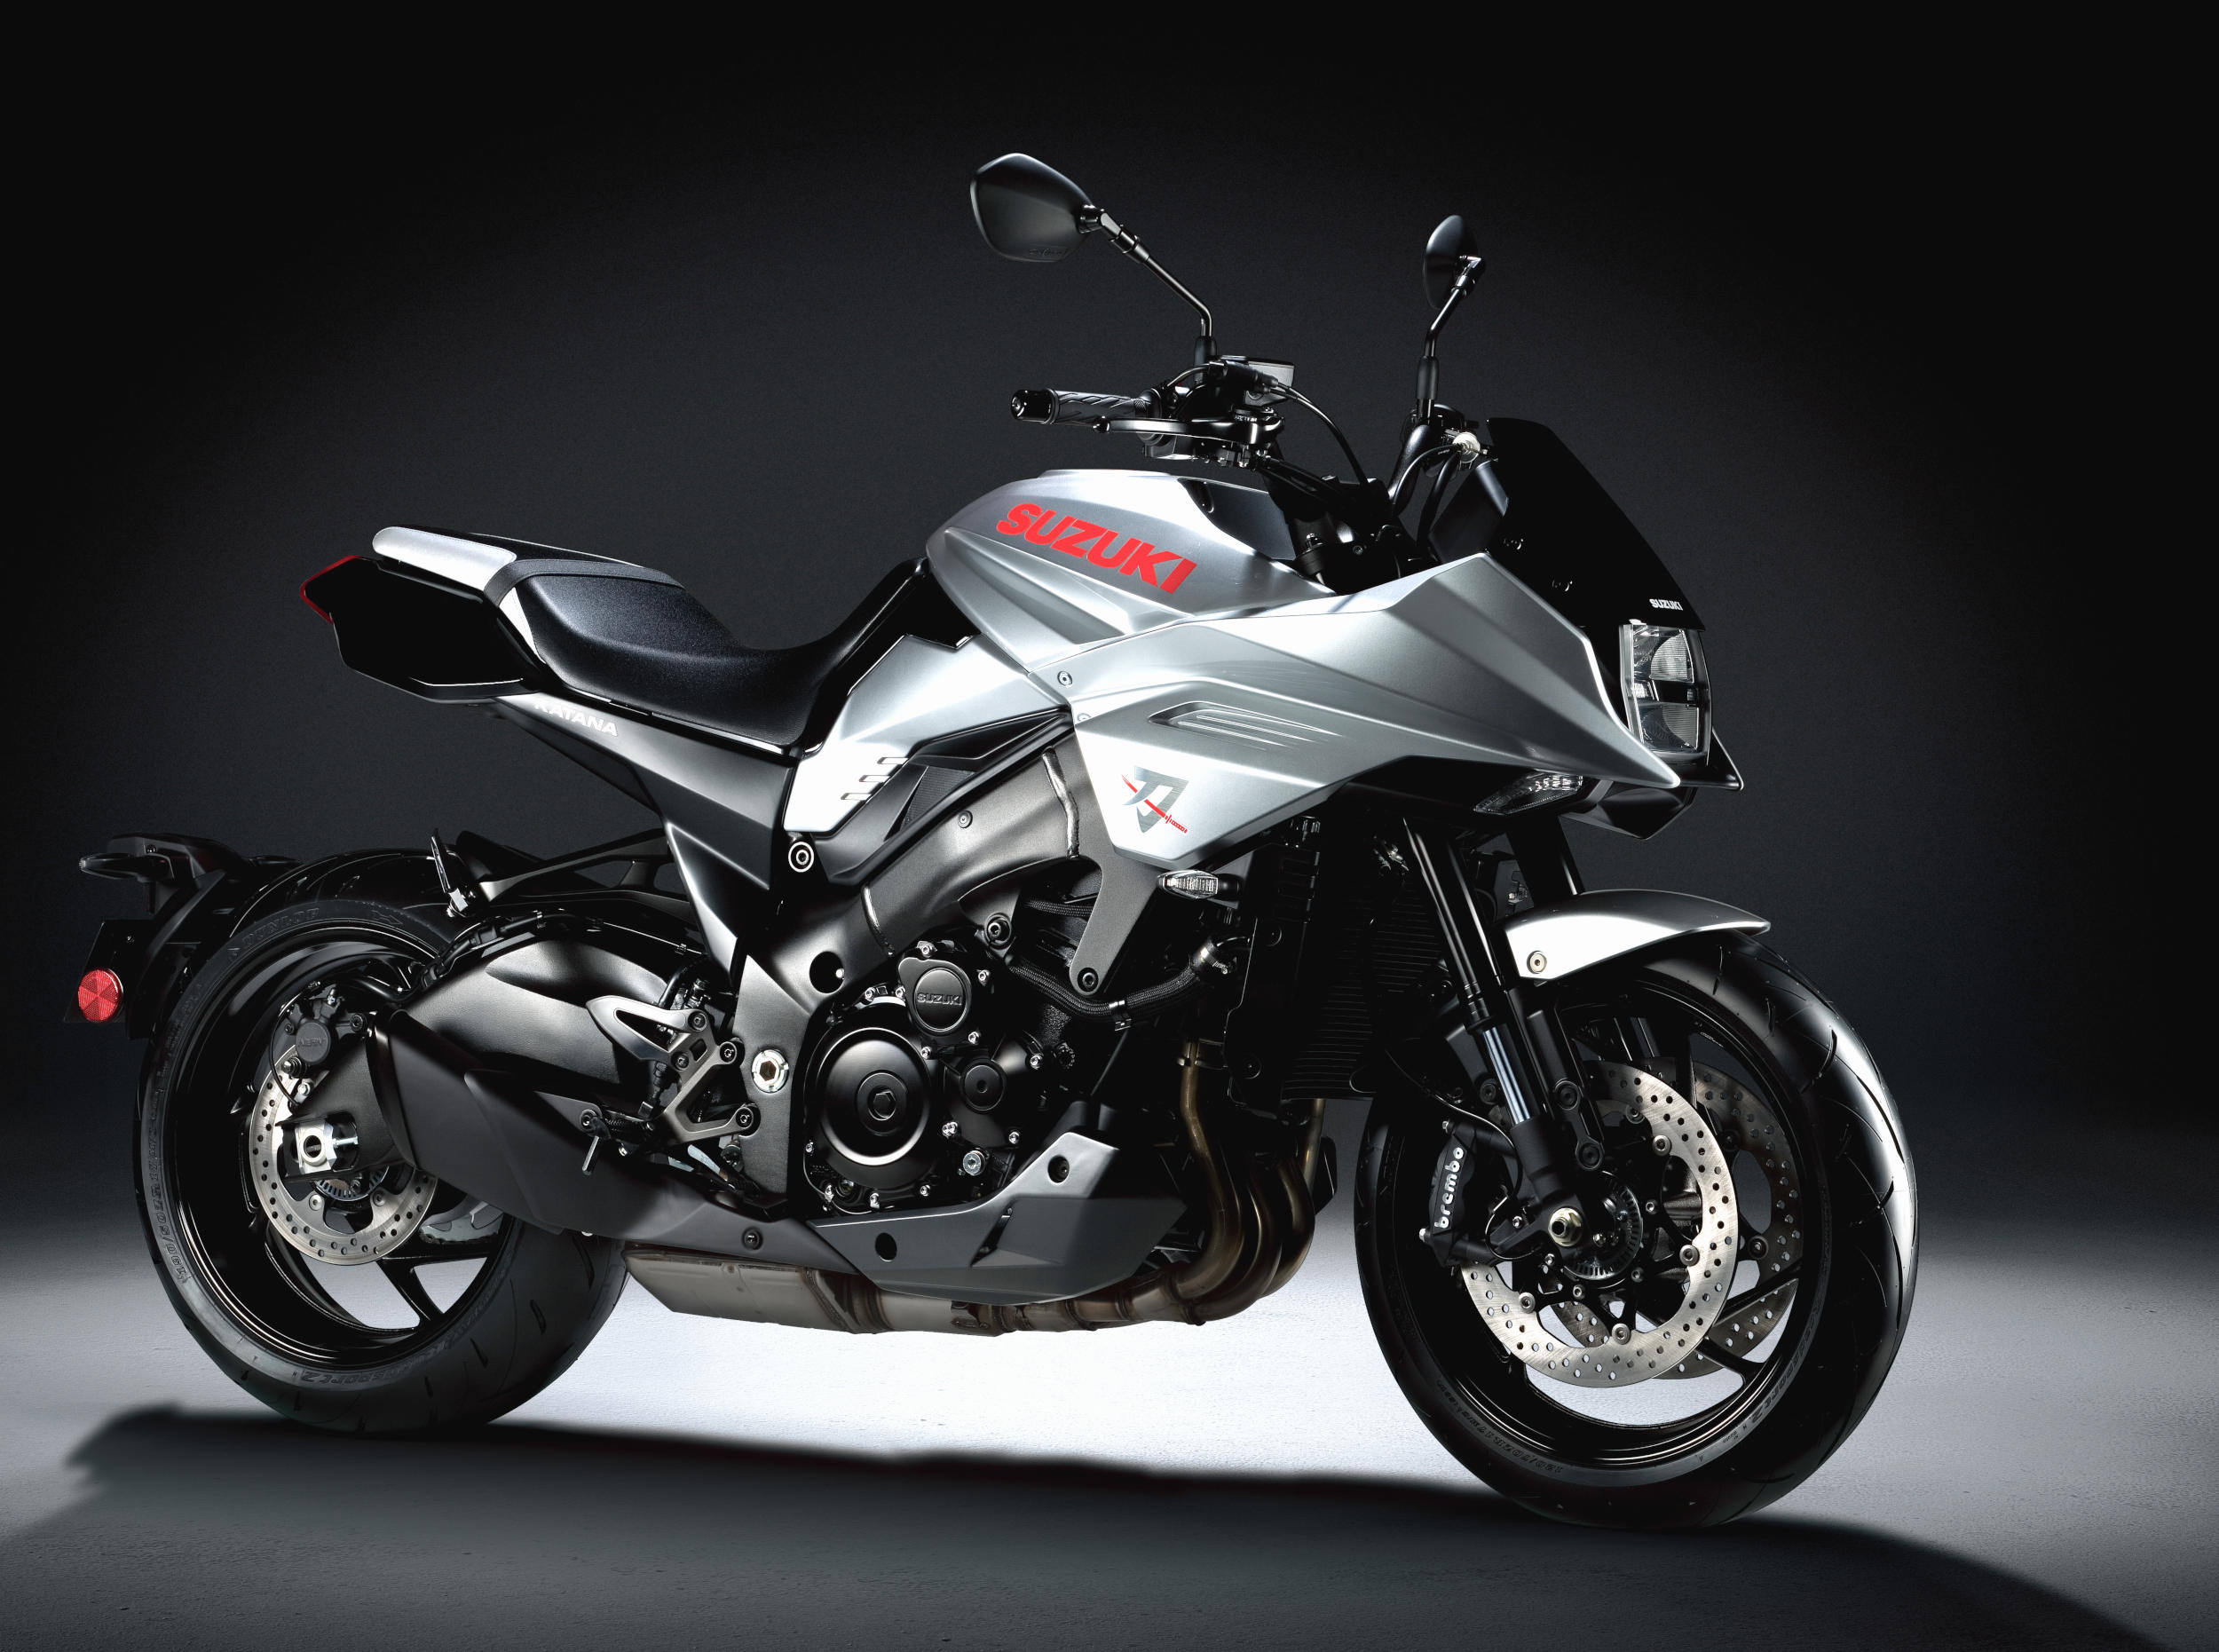 Best Tank In Wow 2020 Suzuki Unveils 2020 KATANA: Speed and Comfort   MotorcycleDaily